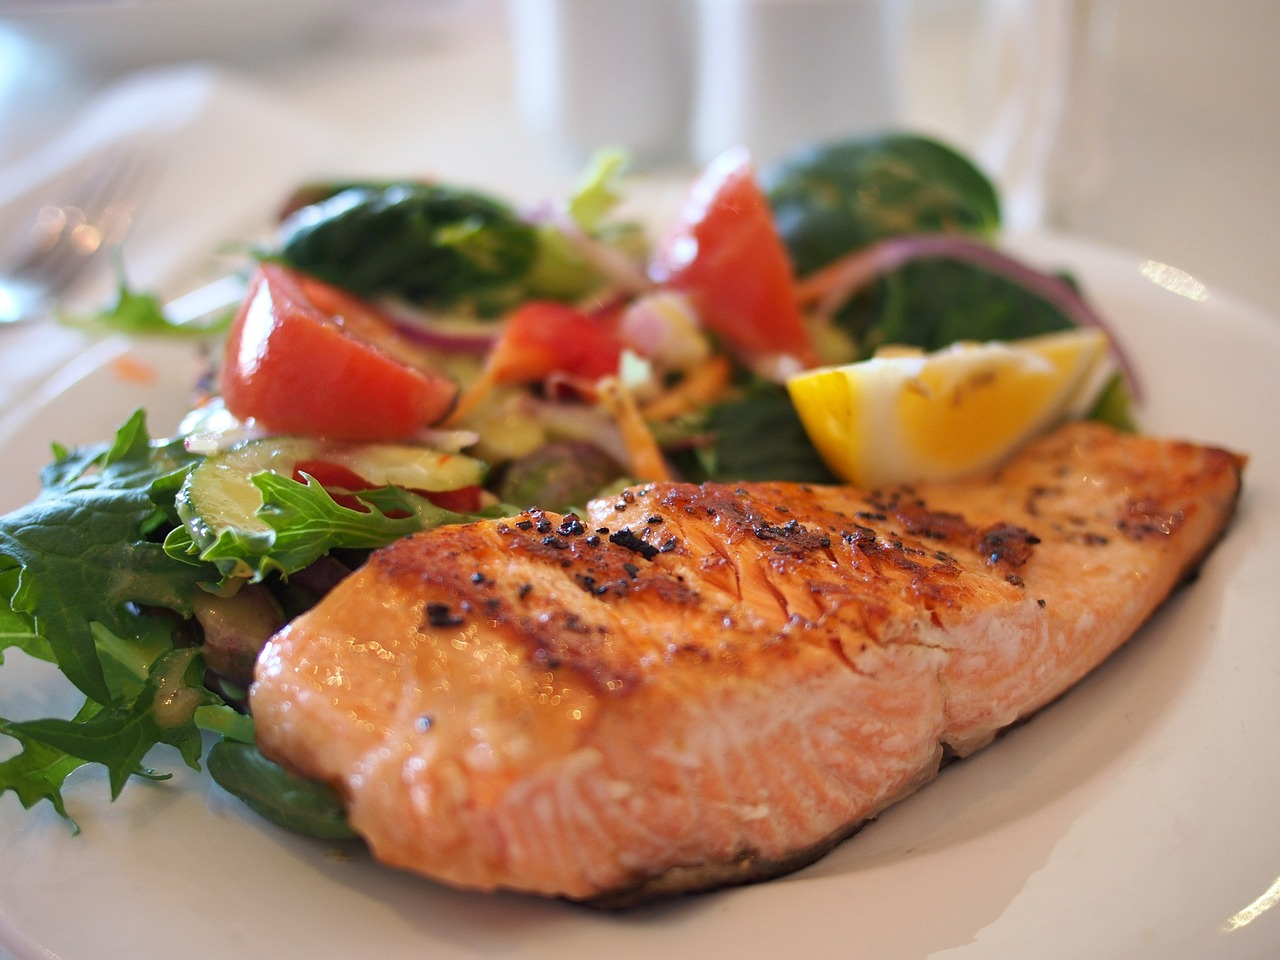 Simple Dinner Ideas: Grilled Salmon and Salad